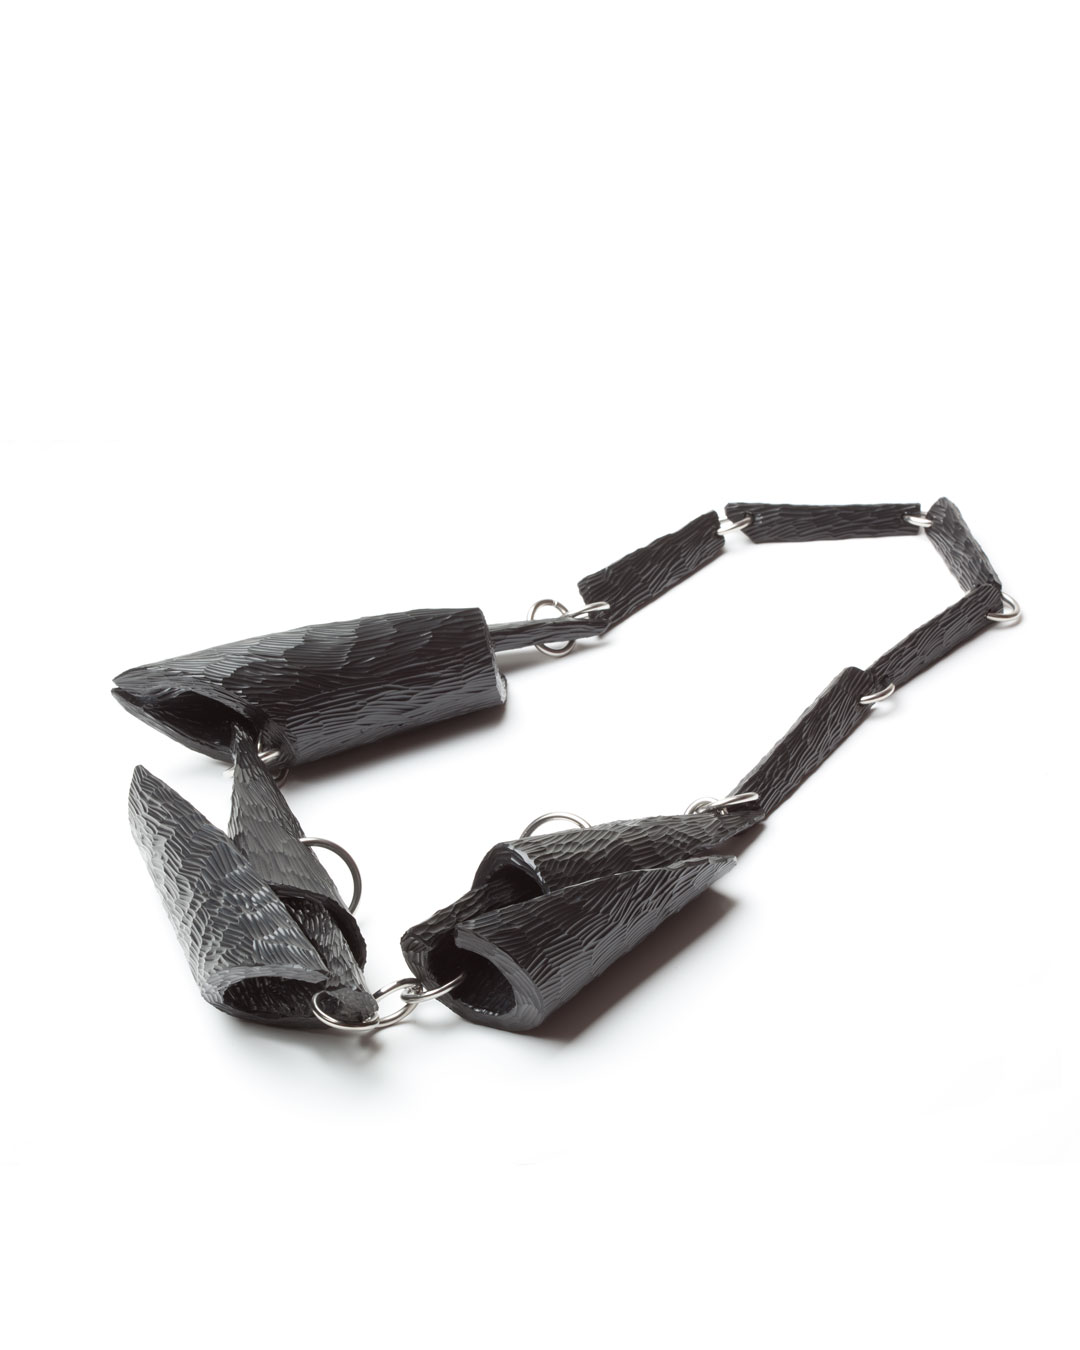 Antje Bräuer, Drei Krähen (Three Crows), 2015, necklace; rubber, steel, 450 x 200 x 45 mm, €4000